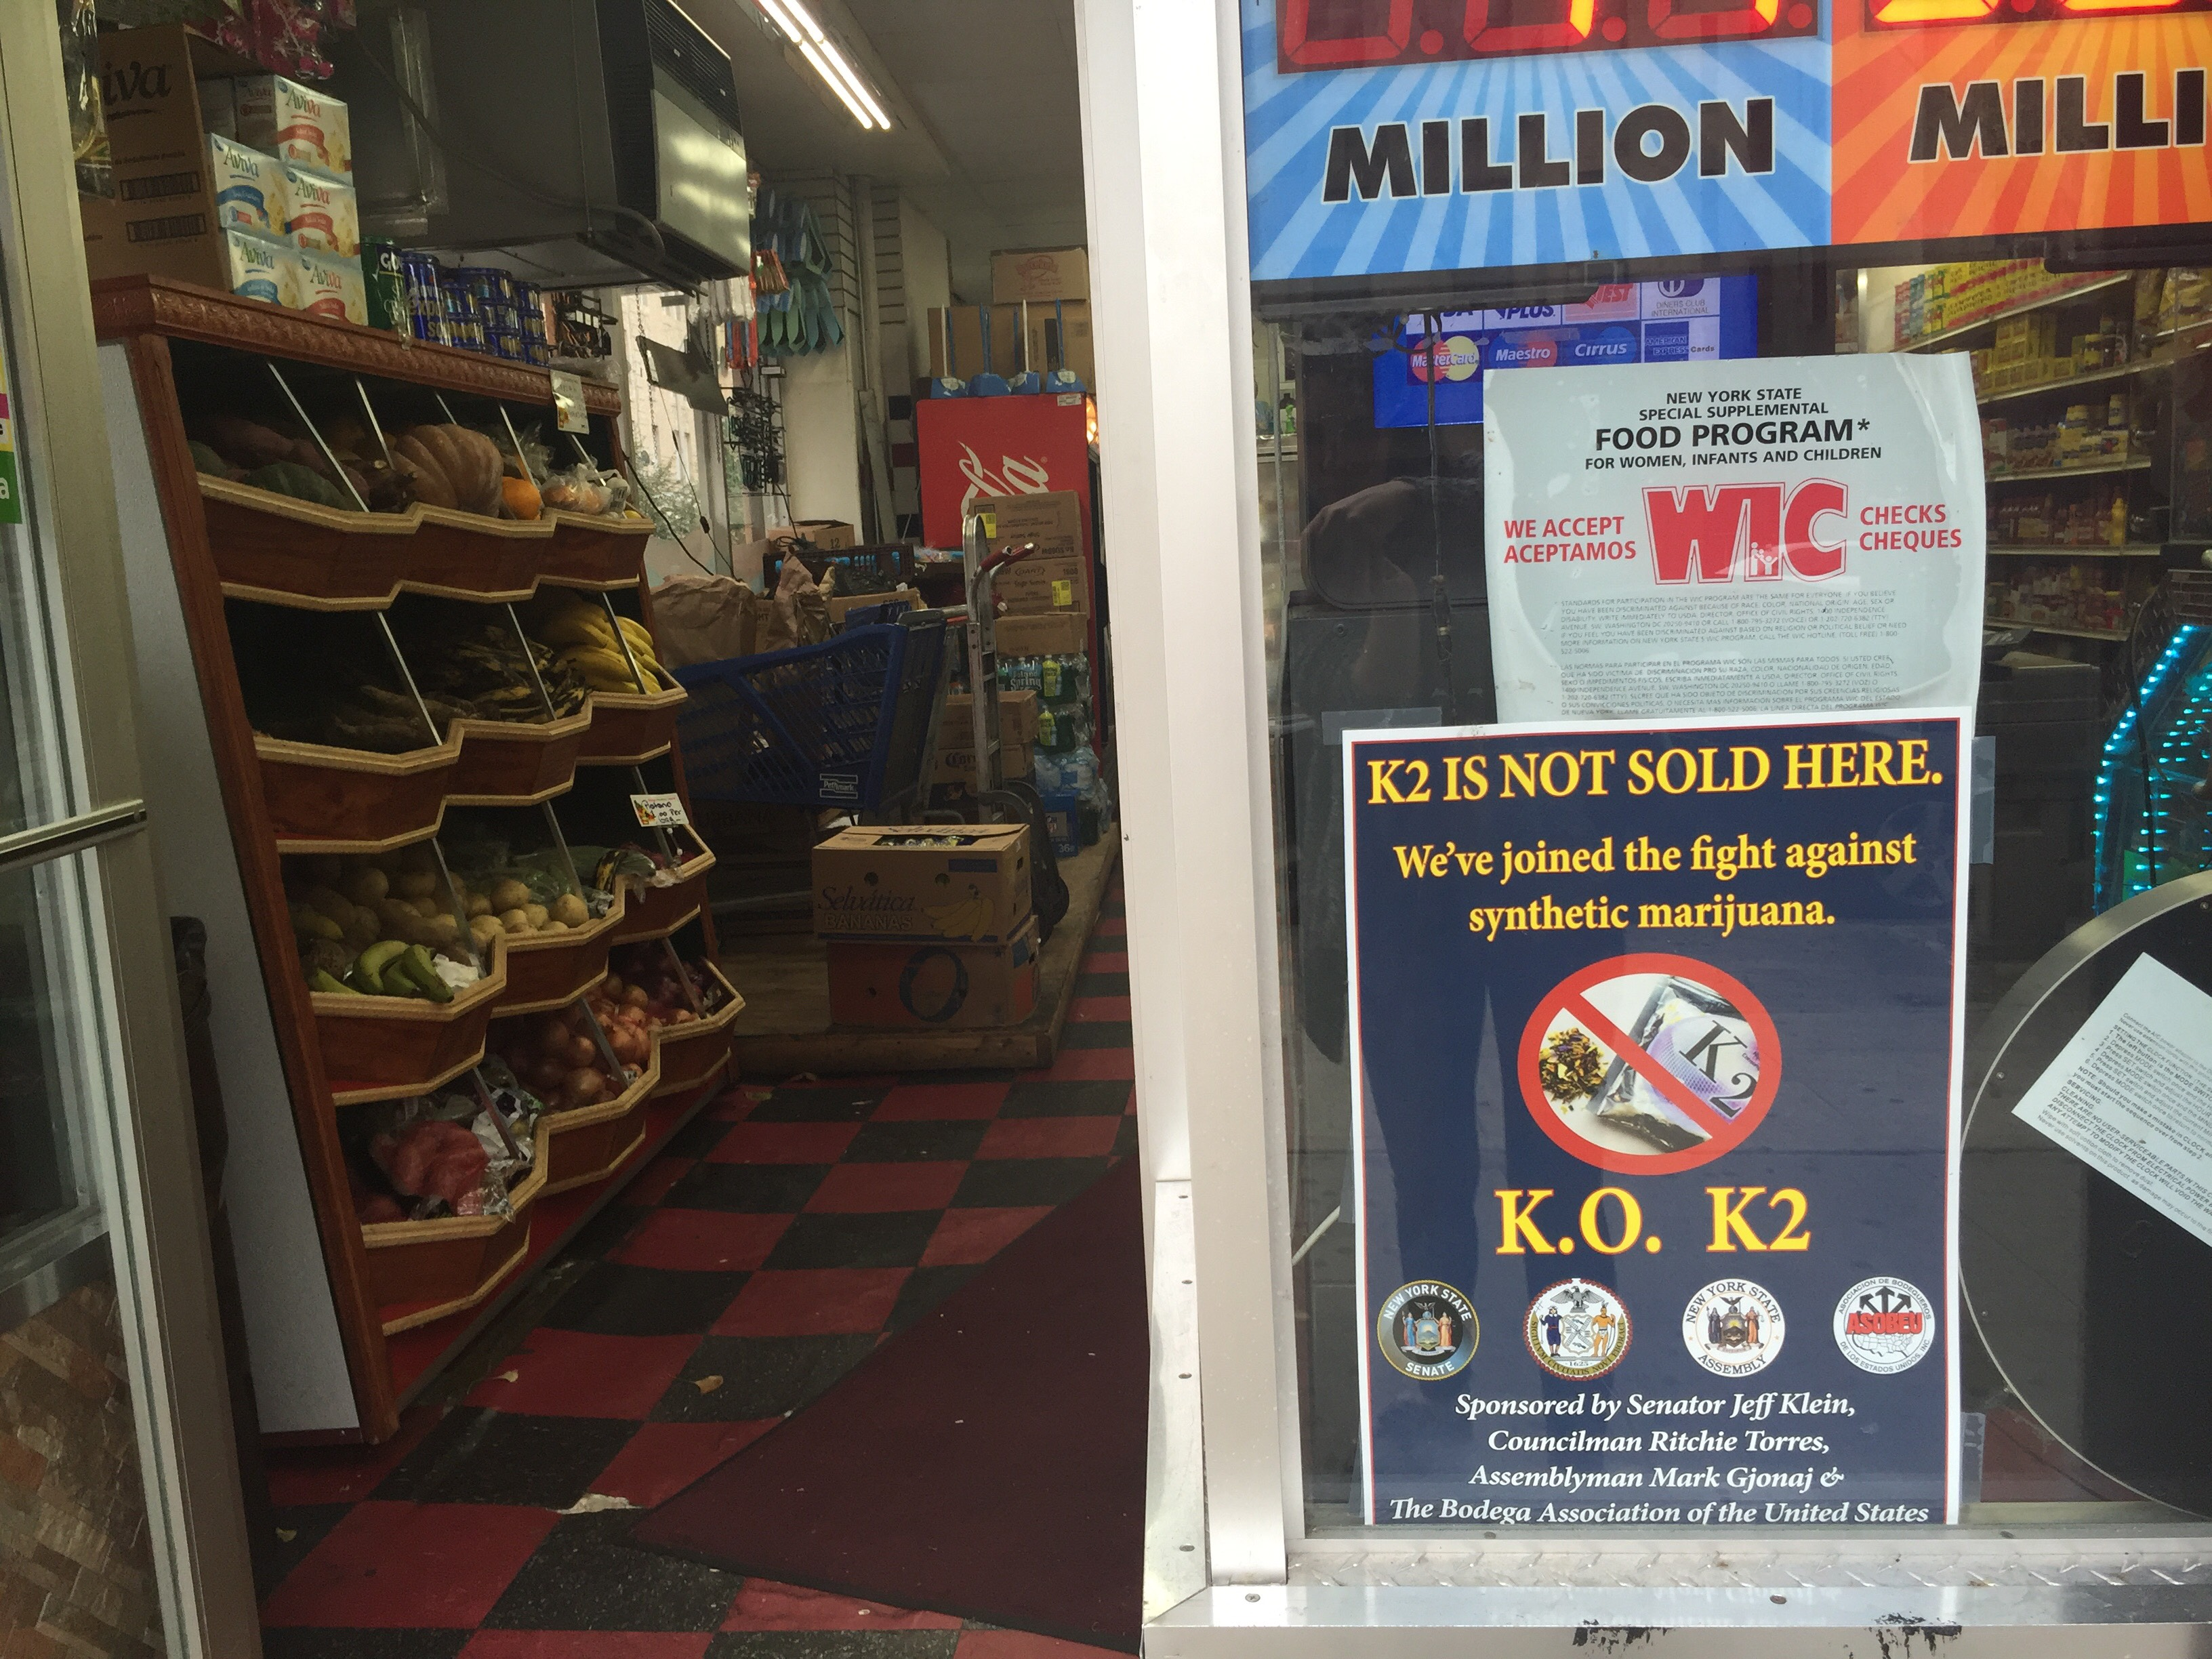 Bodegas agree not to sell K2